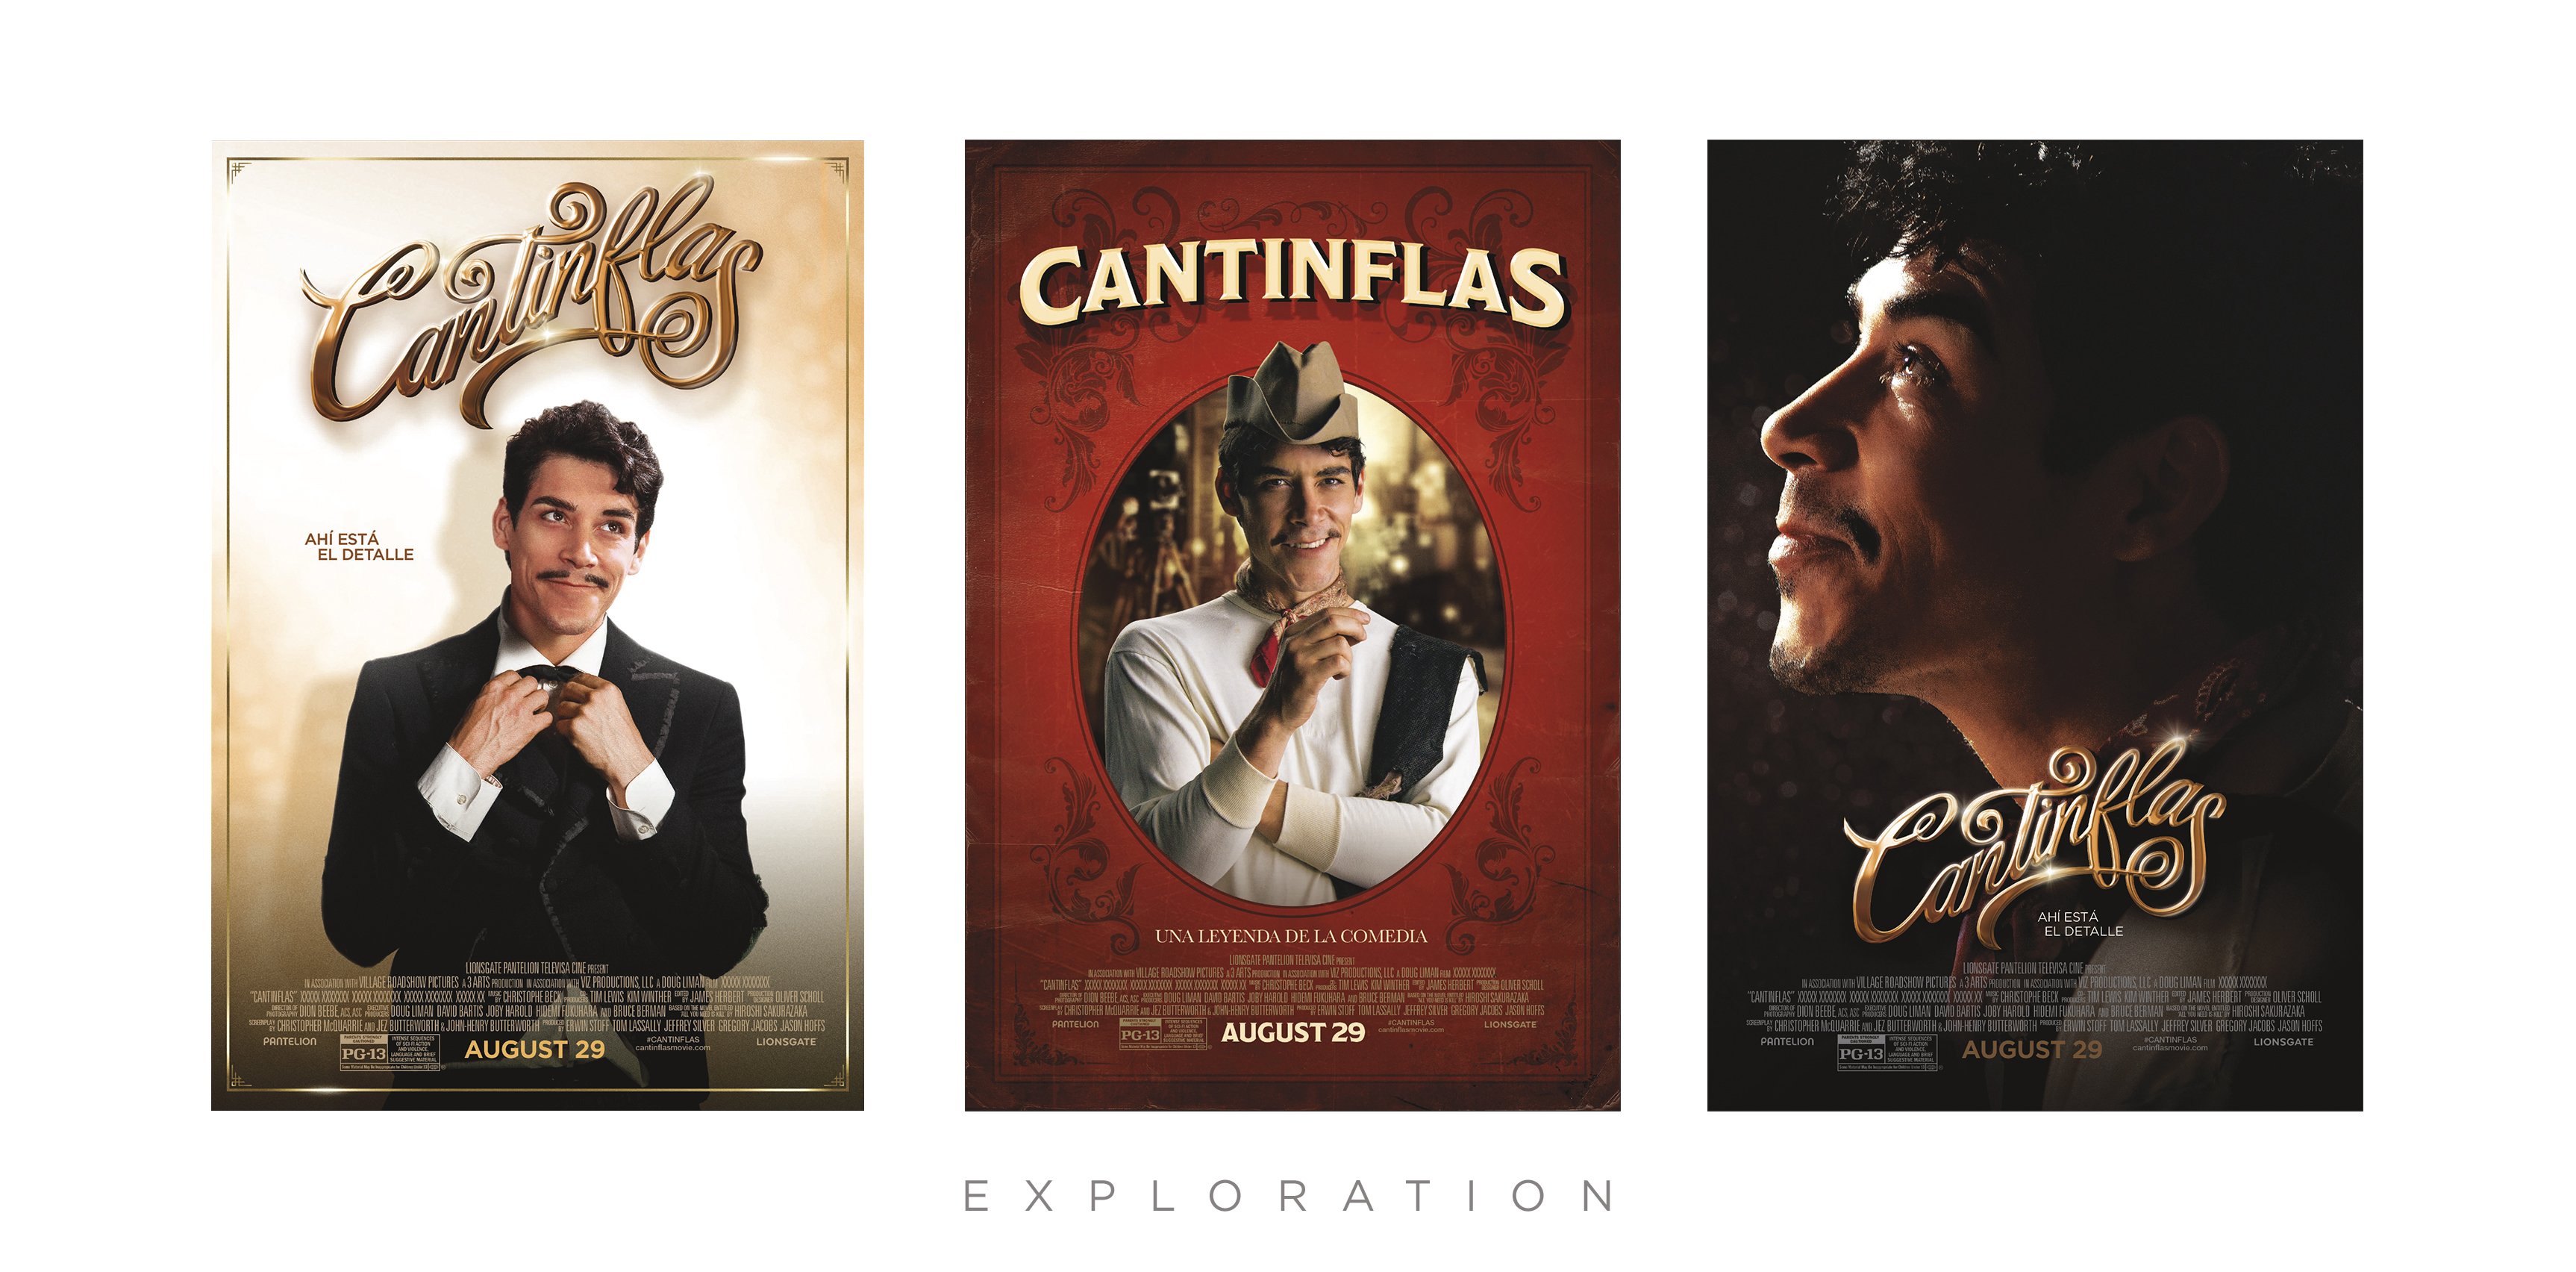 can_cantinflas_exploration_2